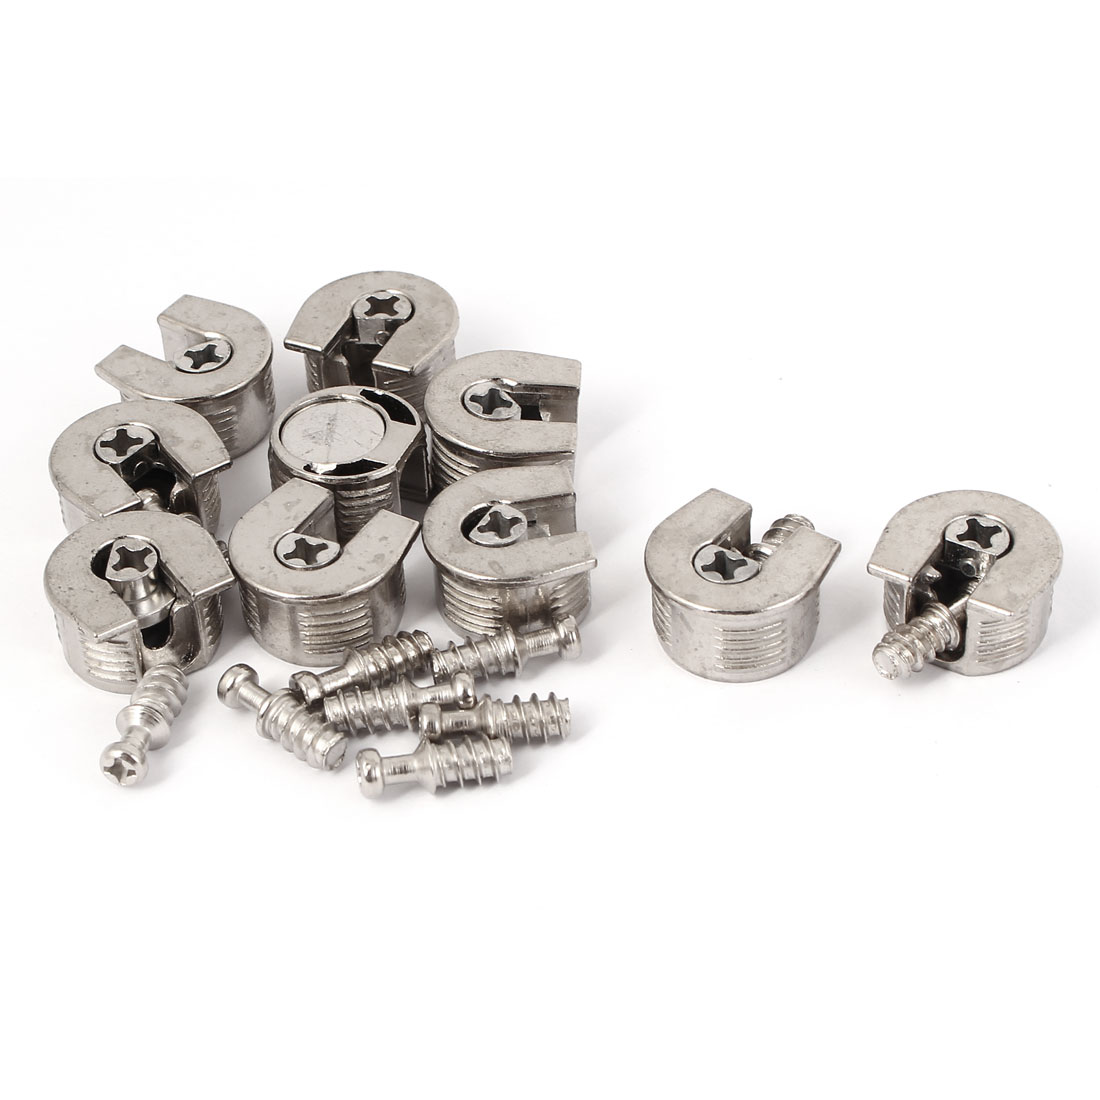 Furniture Fitting Screw in Type Metal Glass Shelf Support Pins Silver Tone 10 Pcs